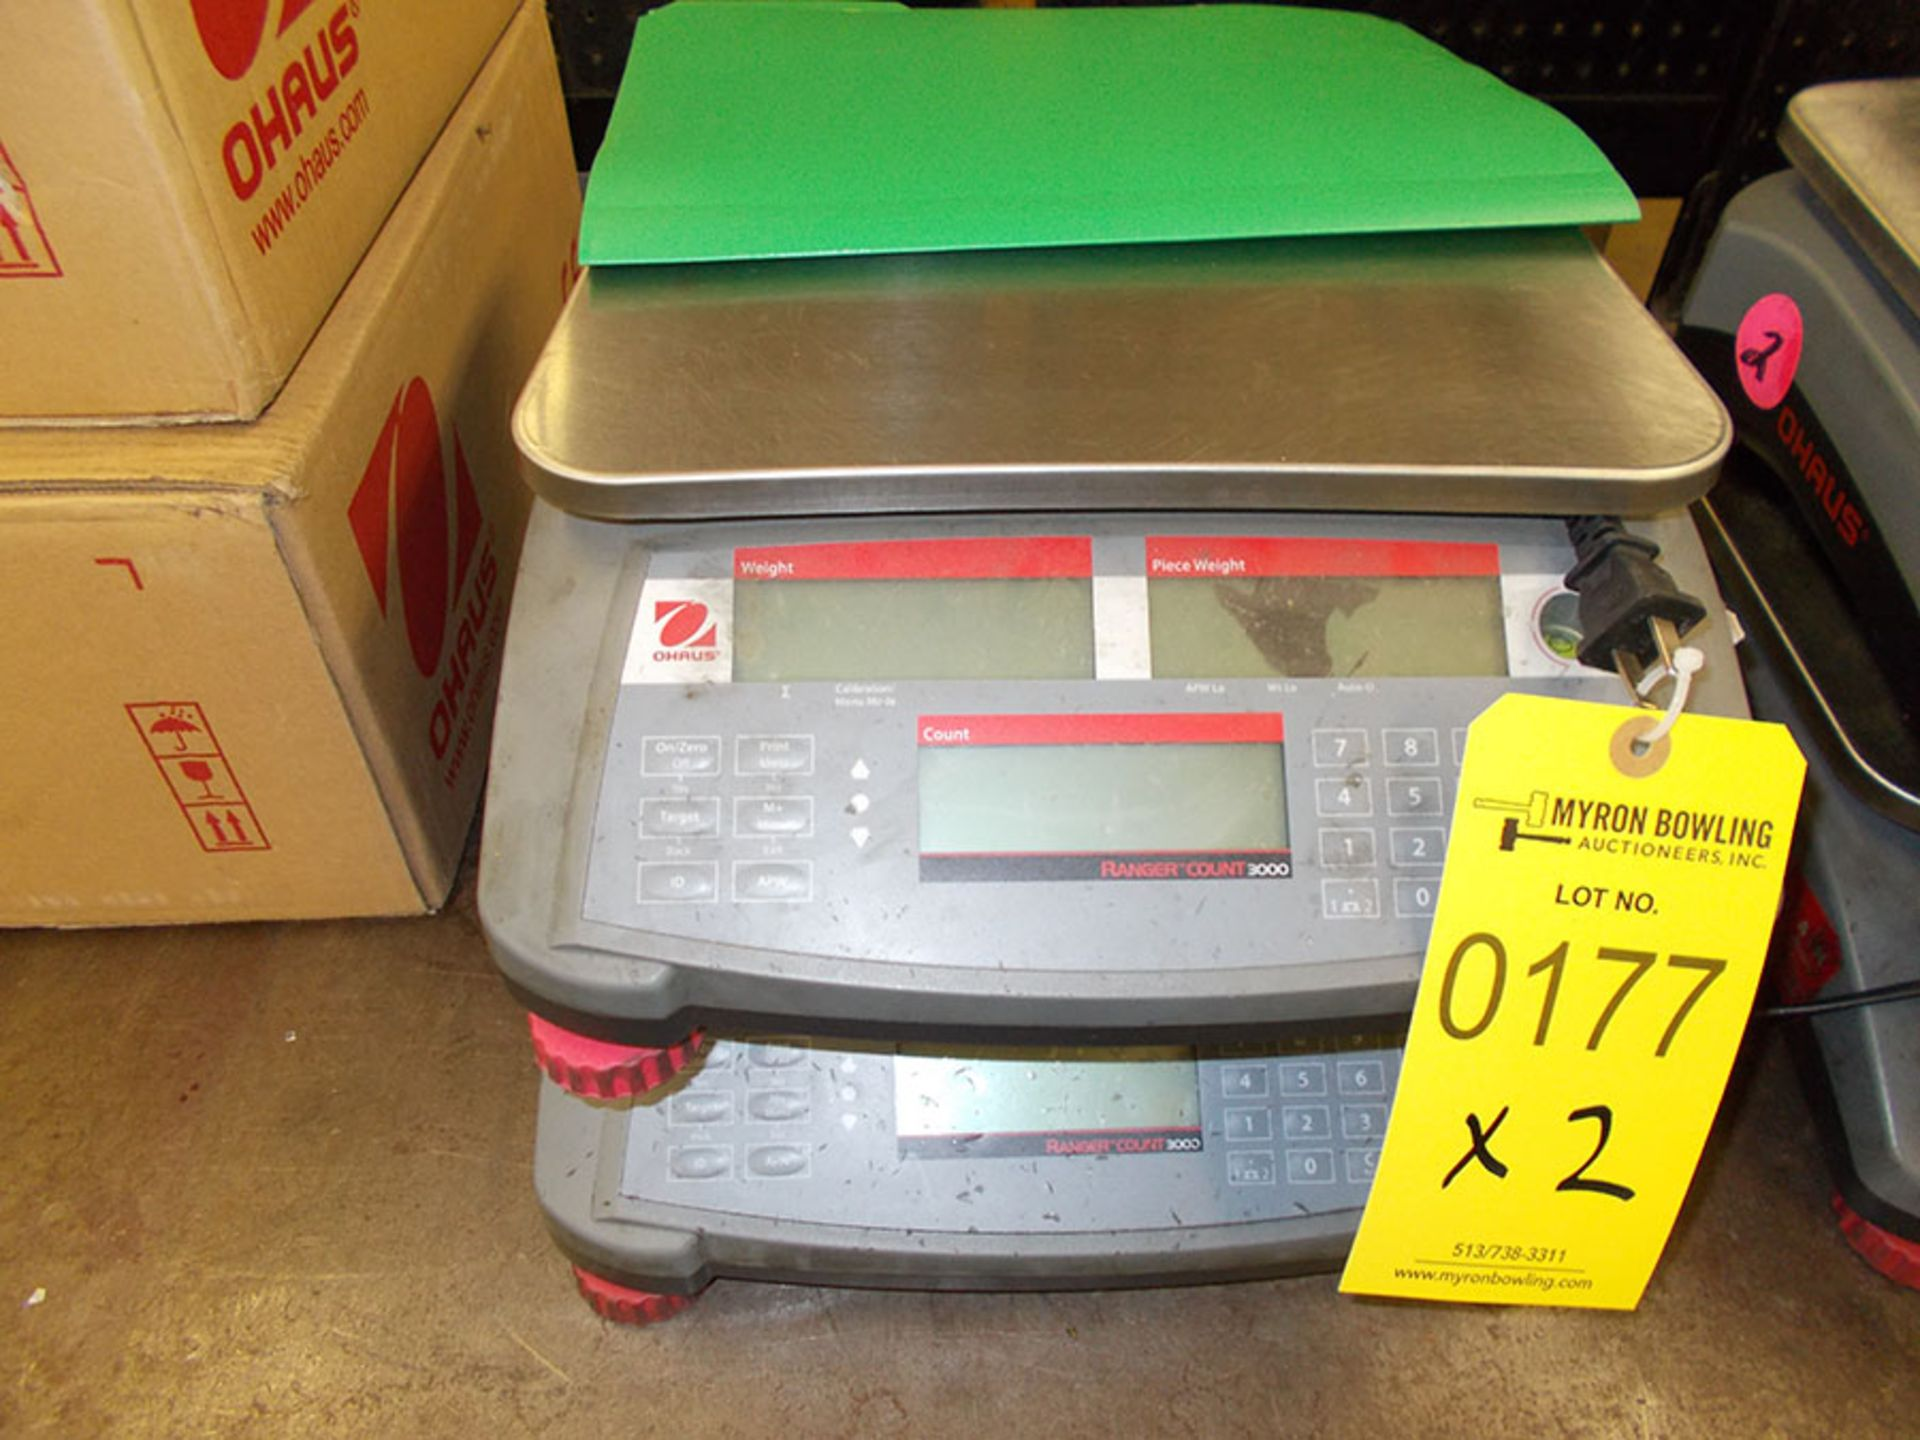 Lot 177 - (2) OHAUS RANGER COUNT 3000 ELECTRONIC SCALES